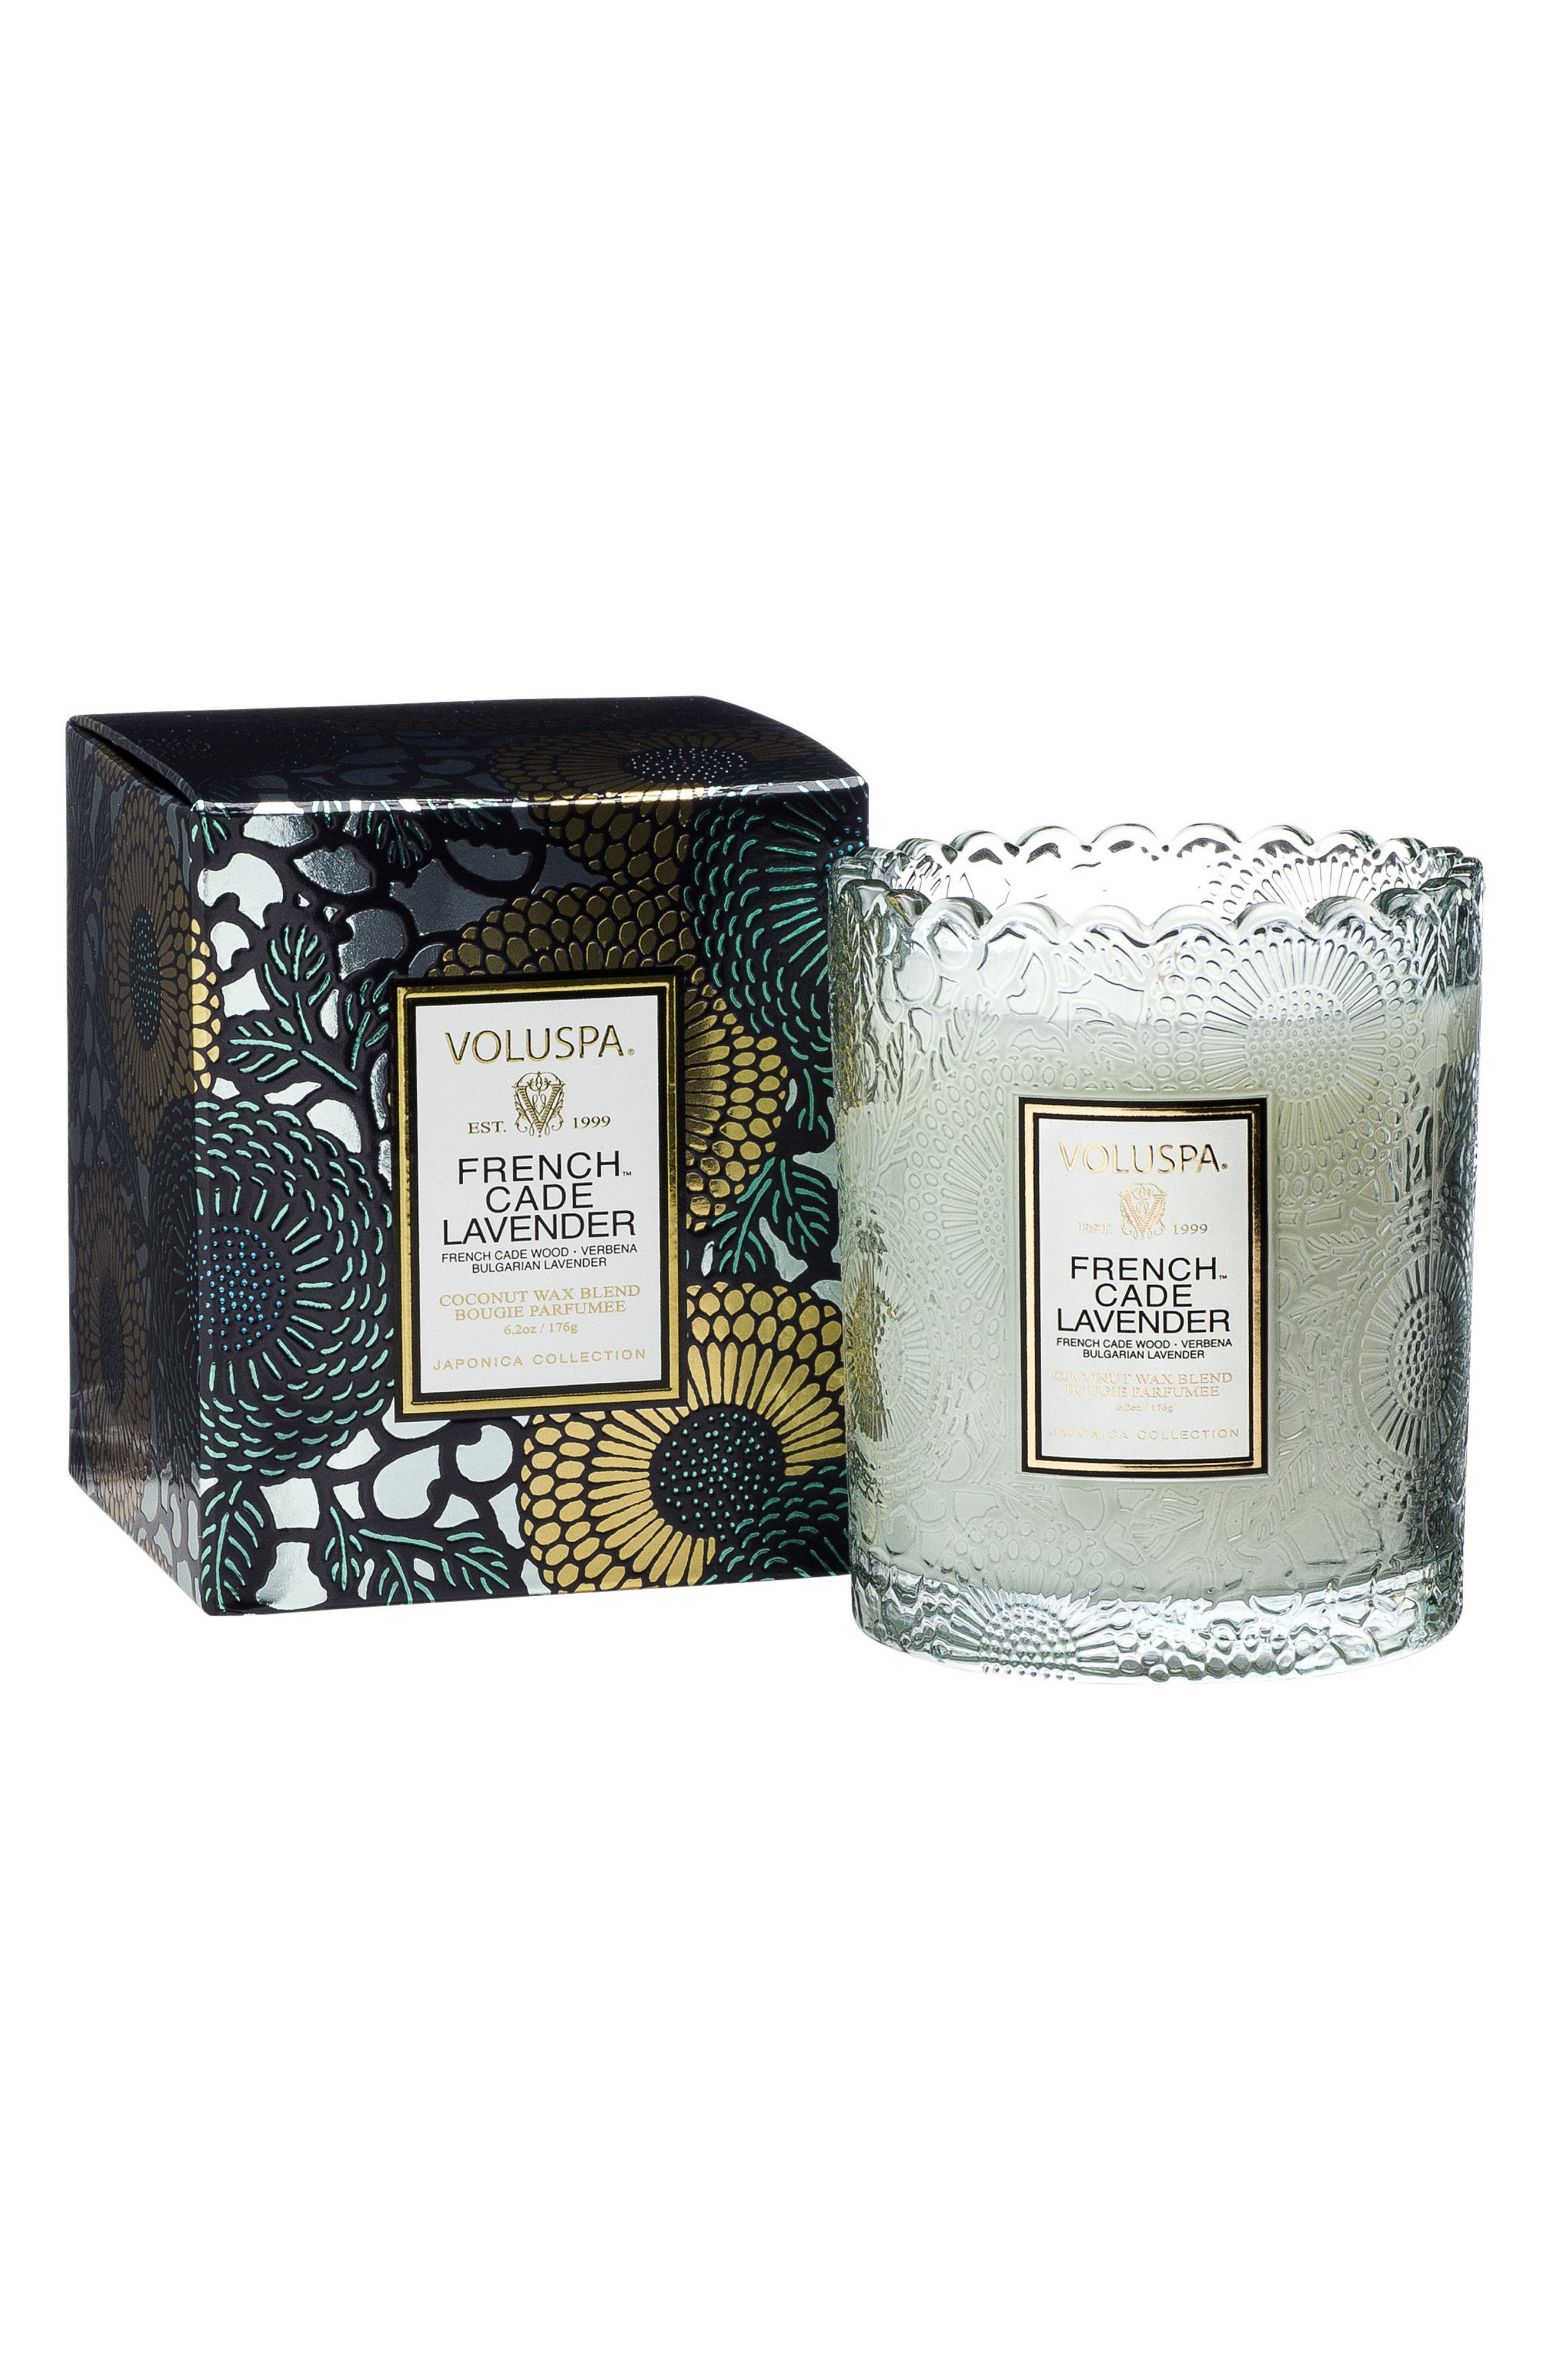 Main Image - Voluspa Japonica French Cade Lavender Boxed Scalloped Candle